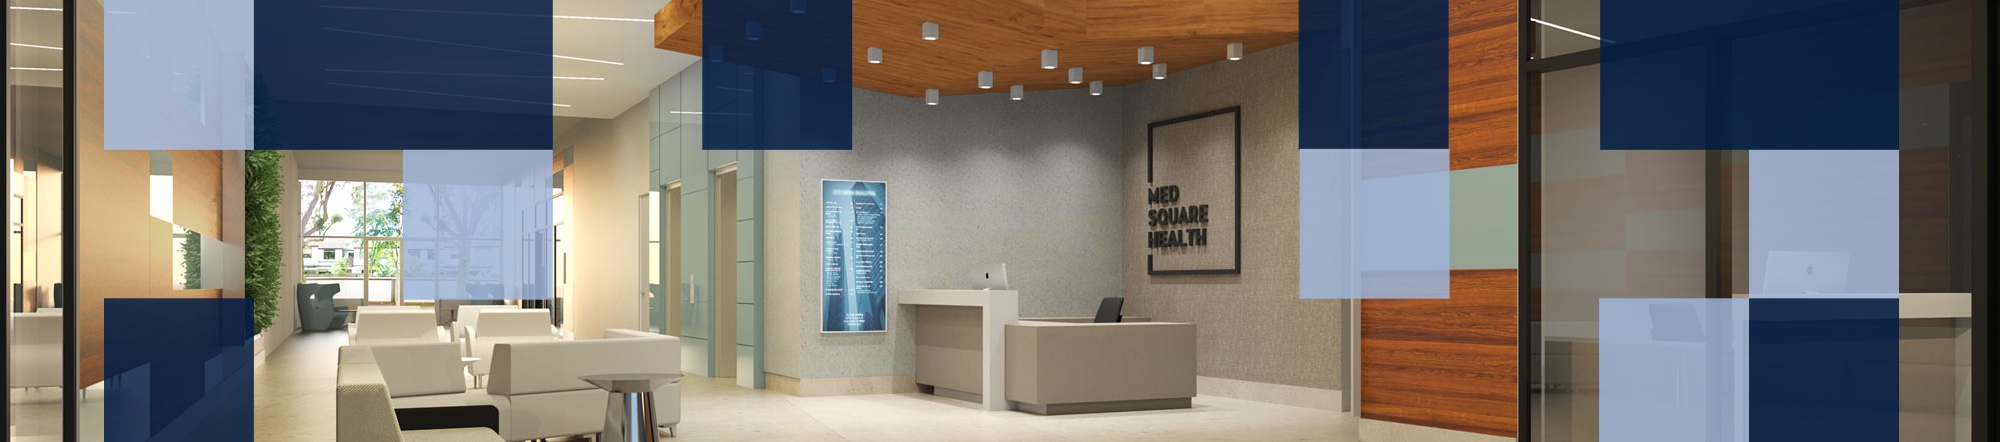 Medsquare Health - Innovative Healthcare, Functional Design